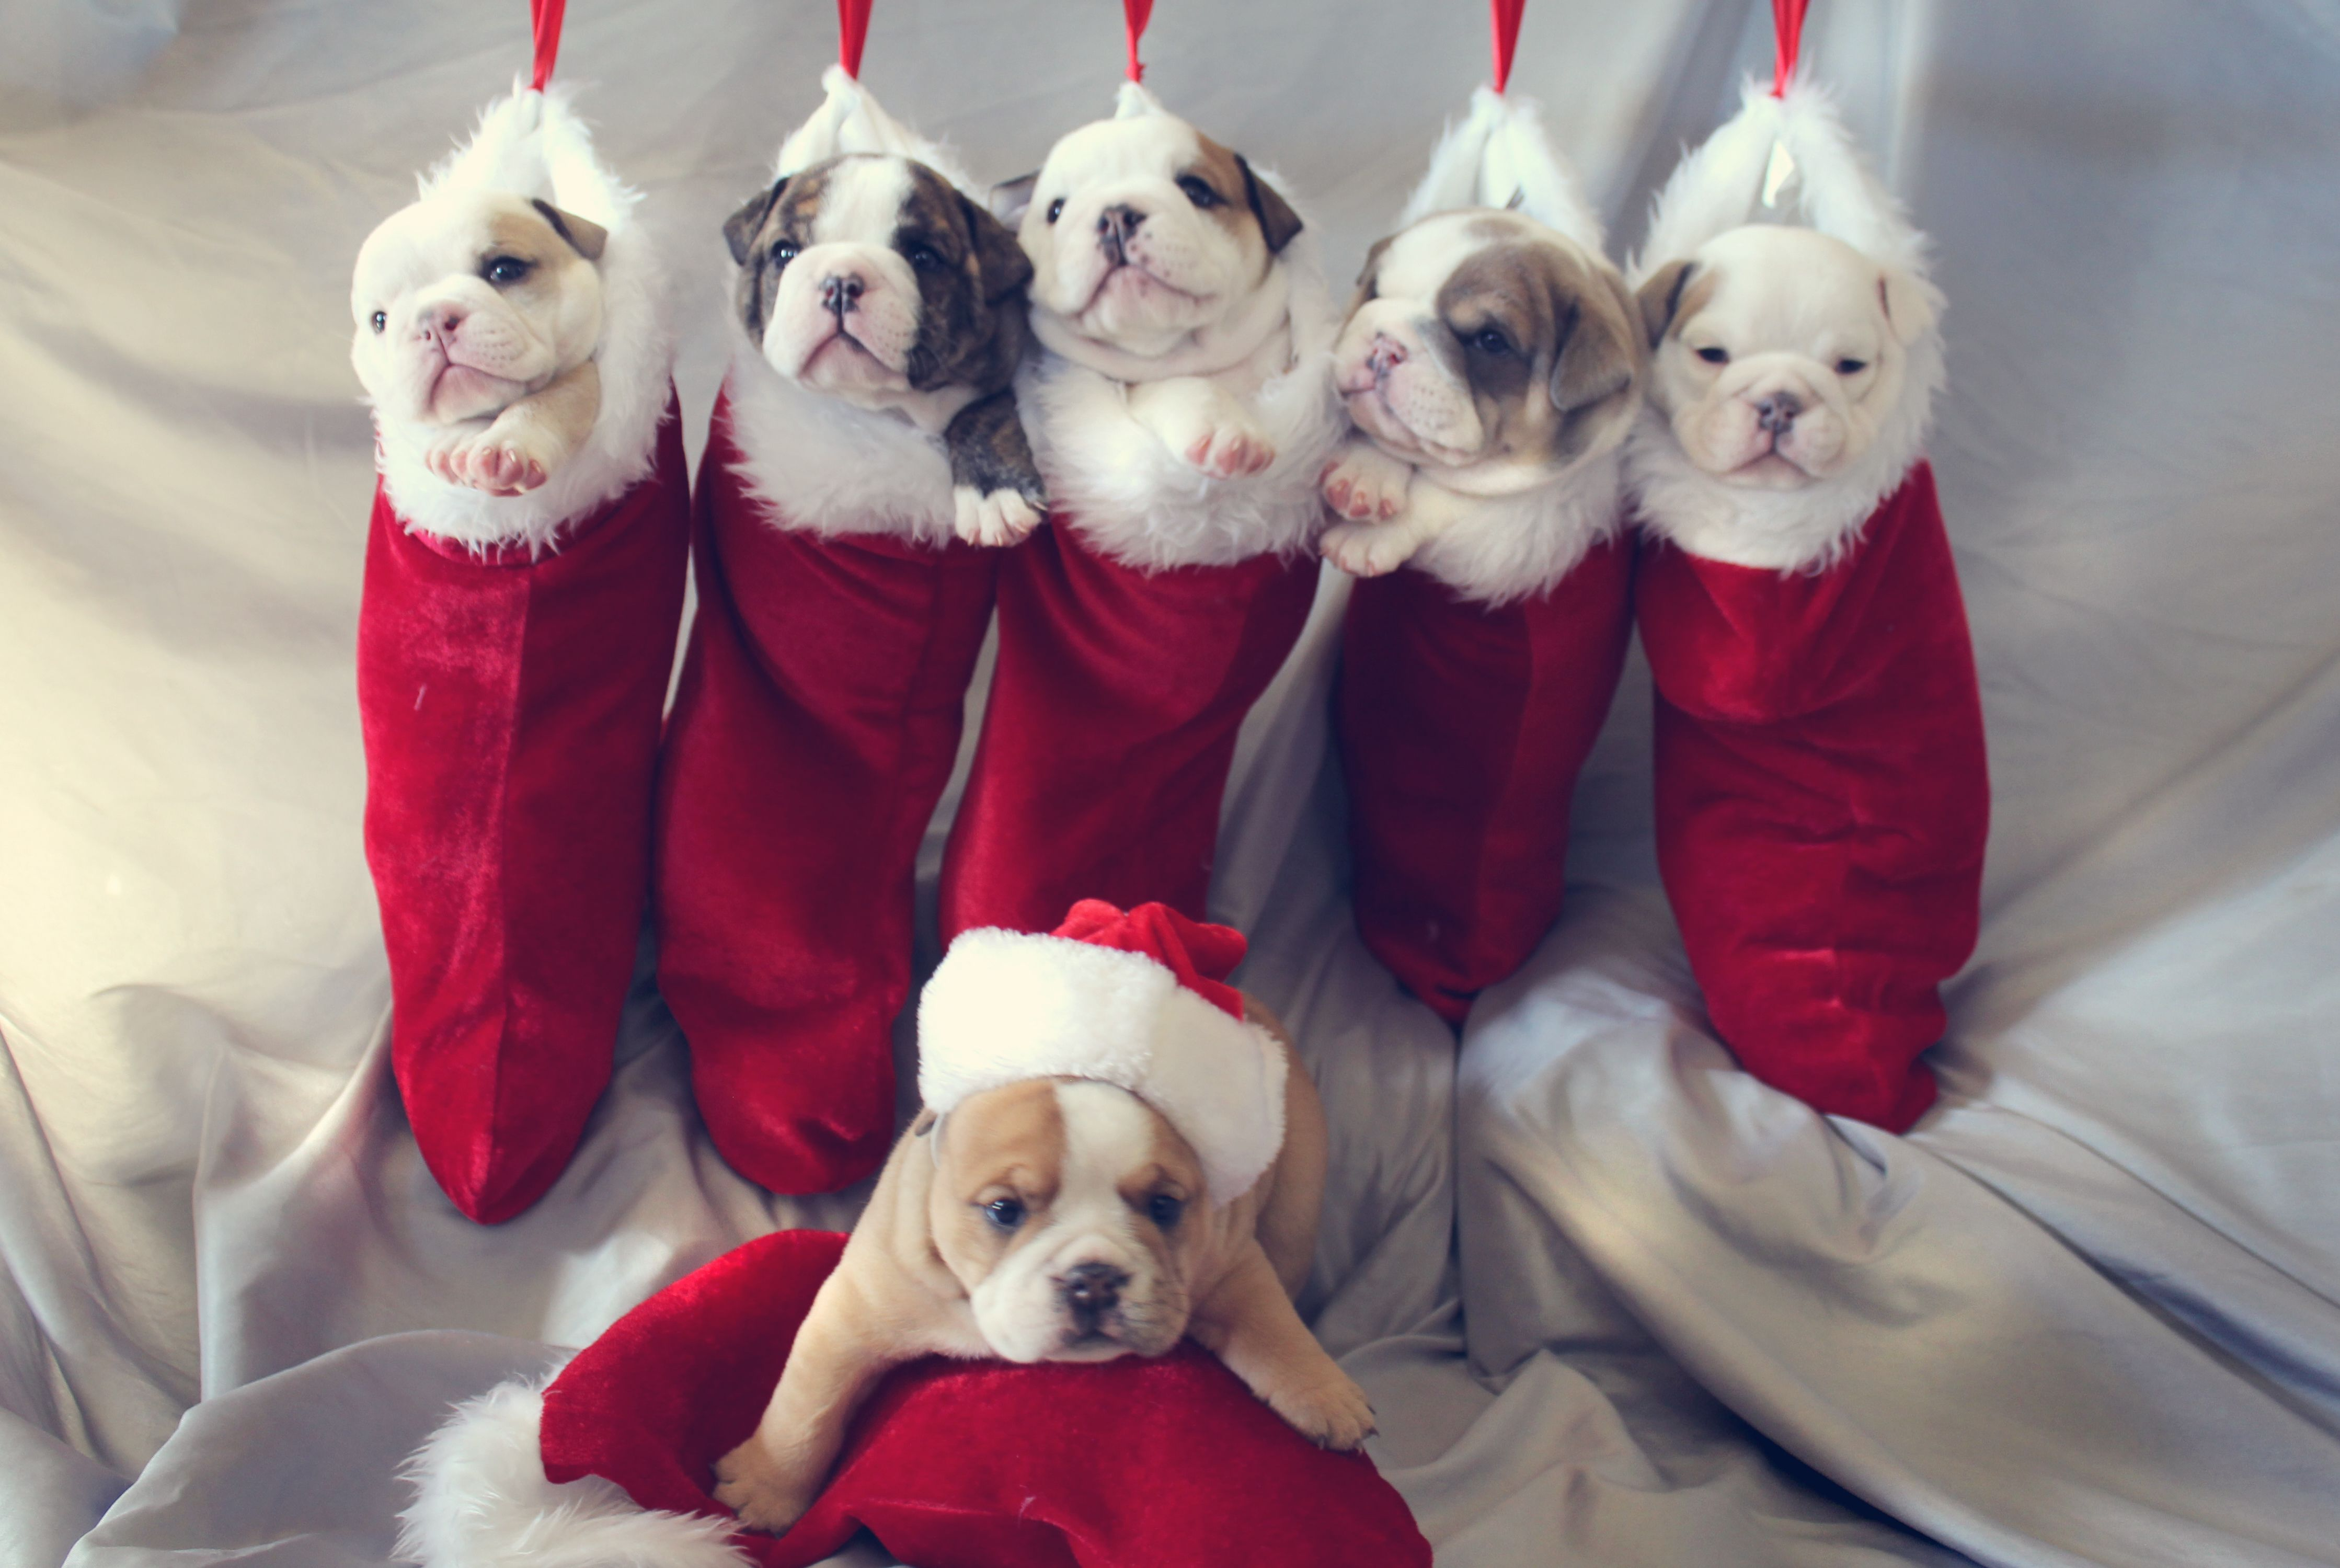 Cute Christmas Puppies.Cutest Christmas English Bulldog Puppies Bull Dogs